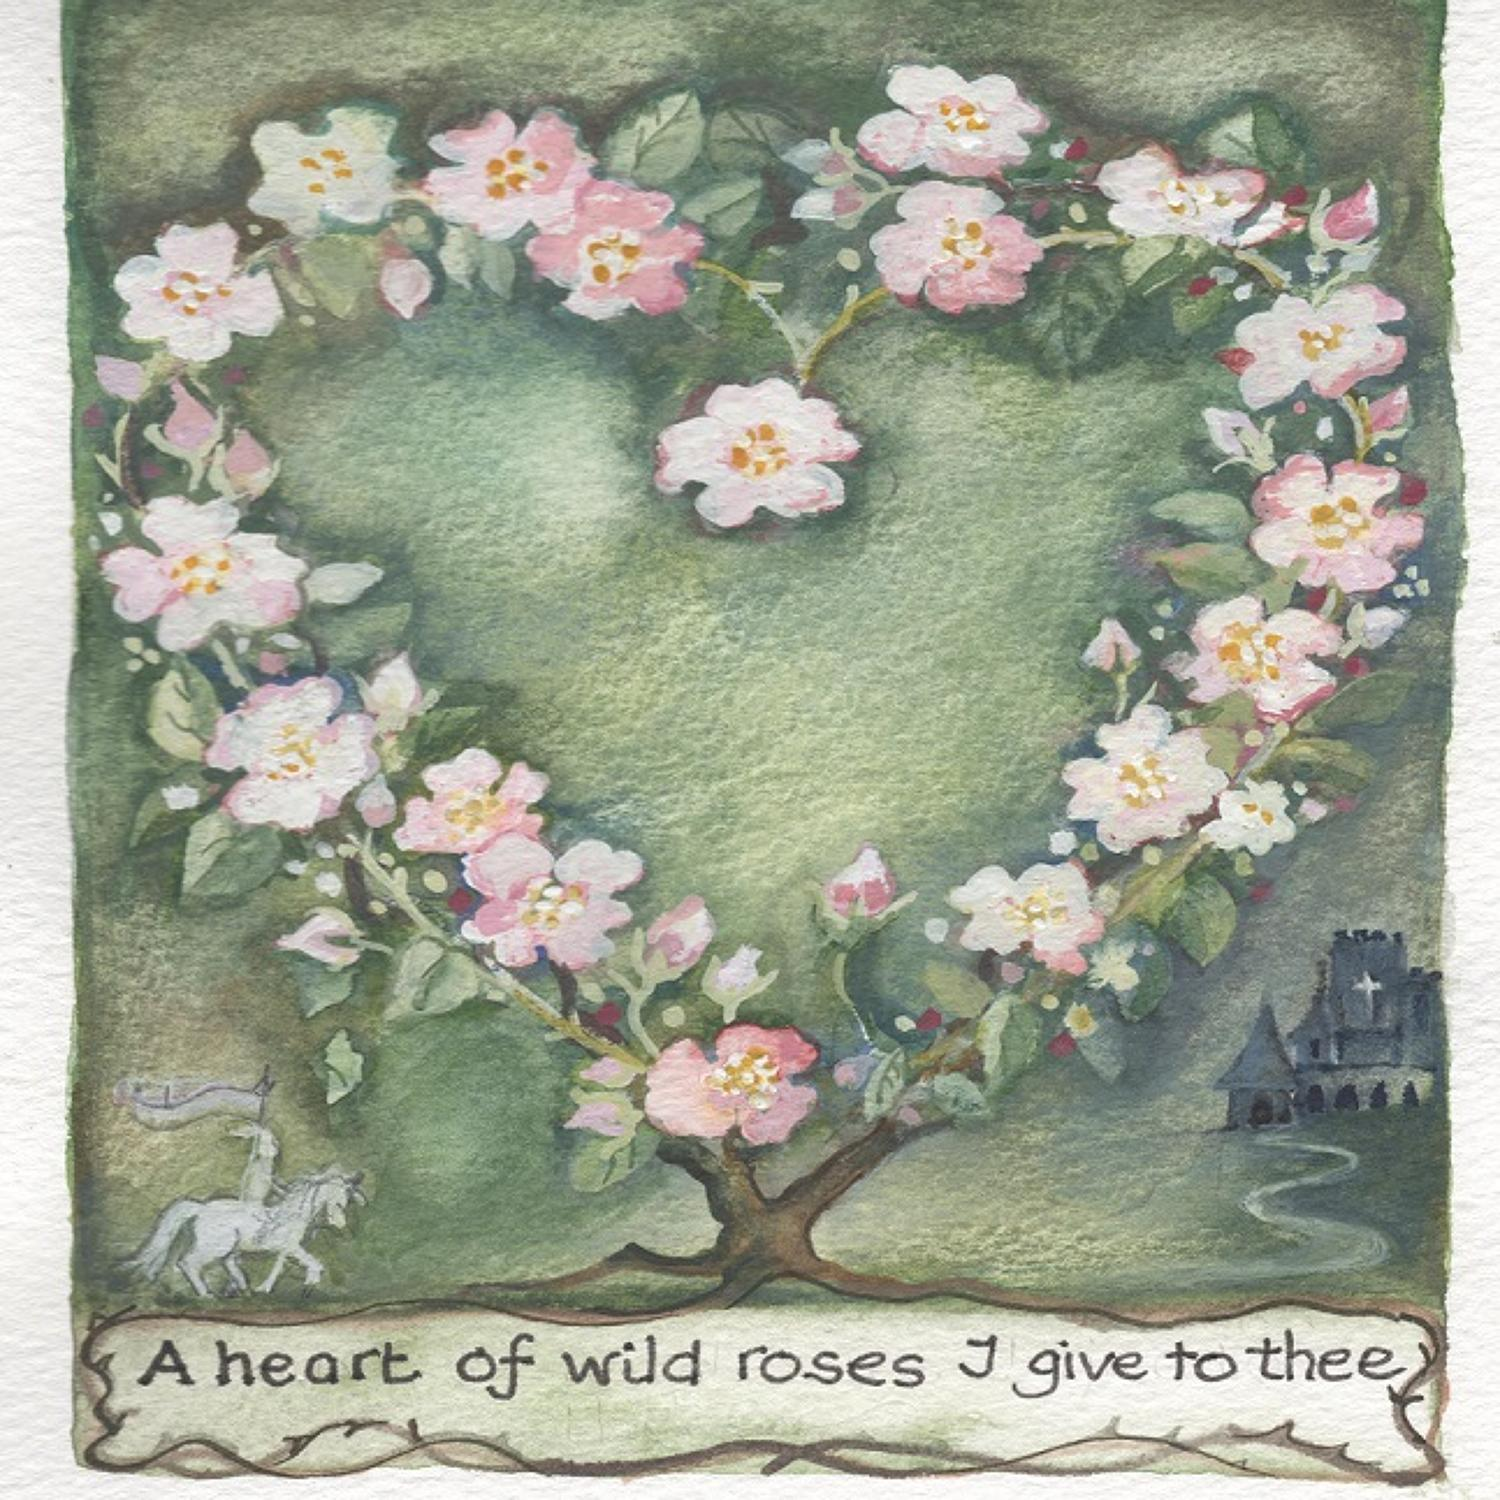 Heart of wild roses